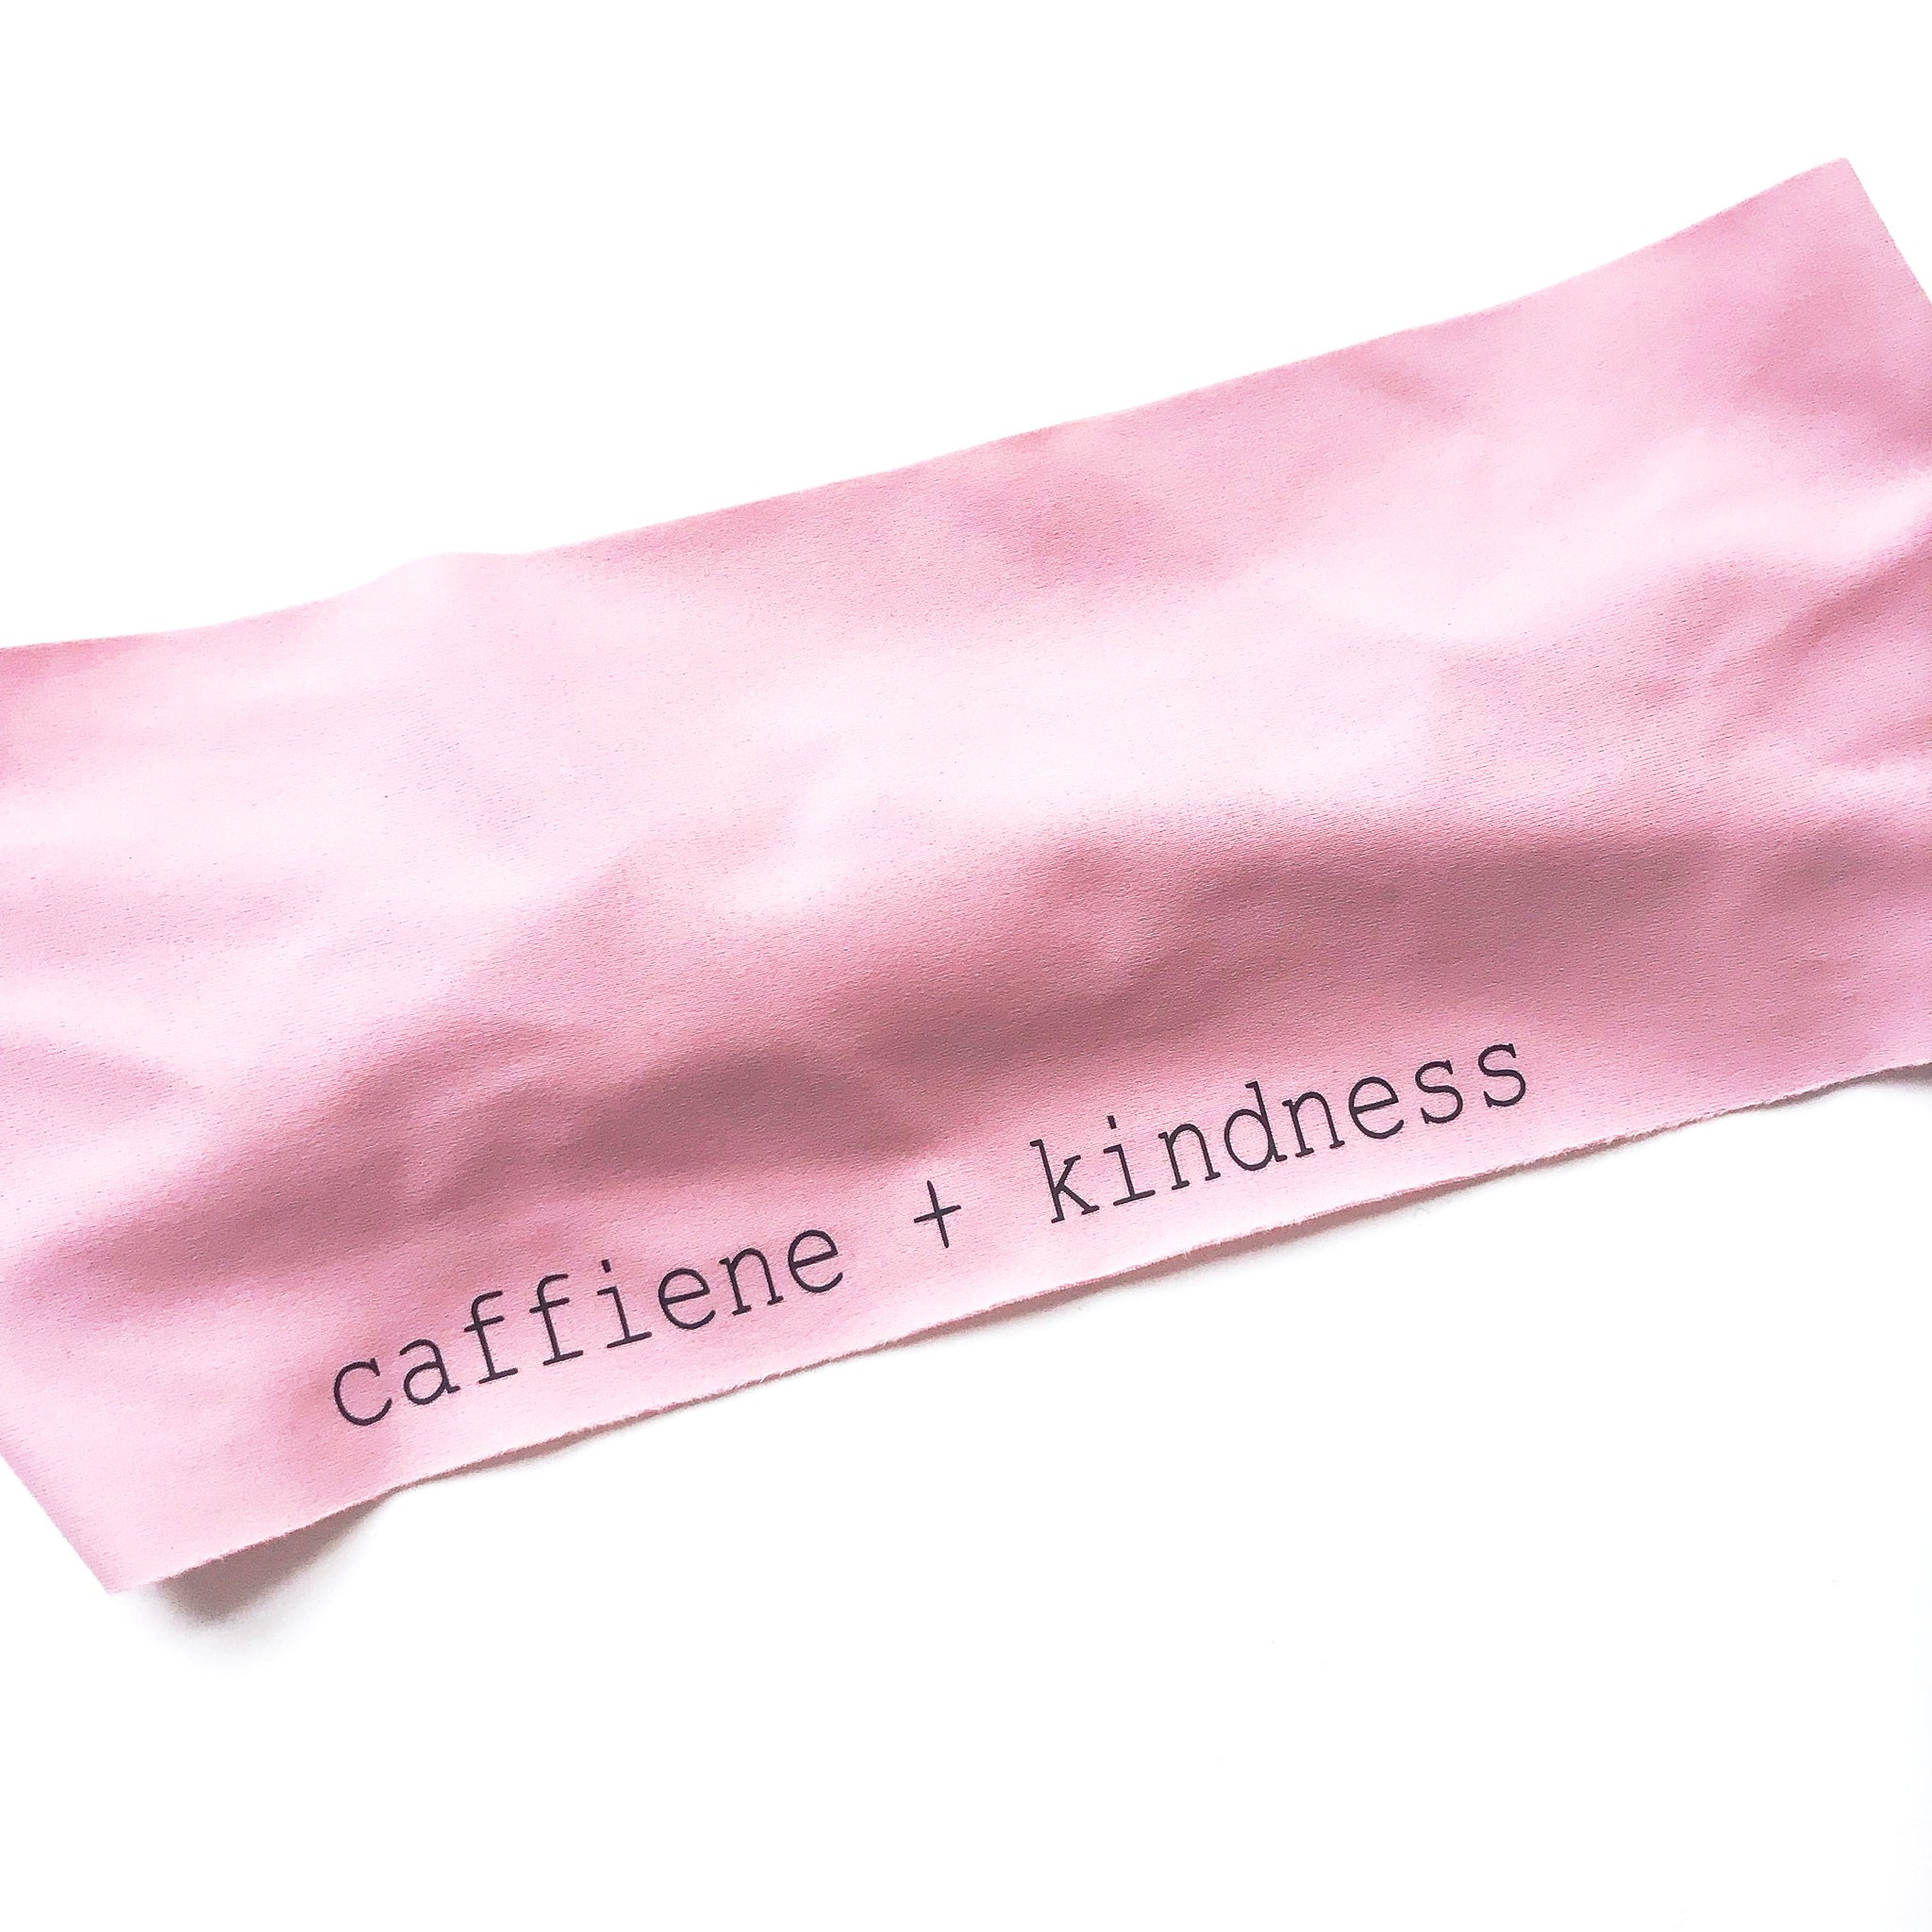 Caffeine + Kindness Headband